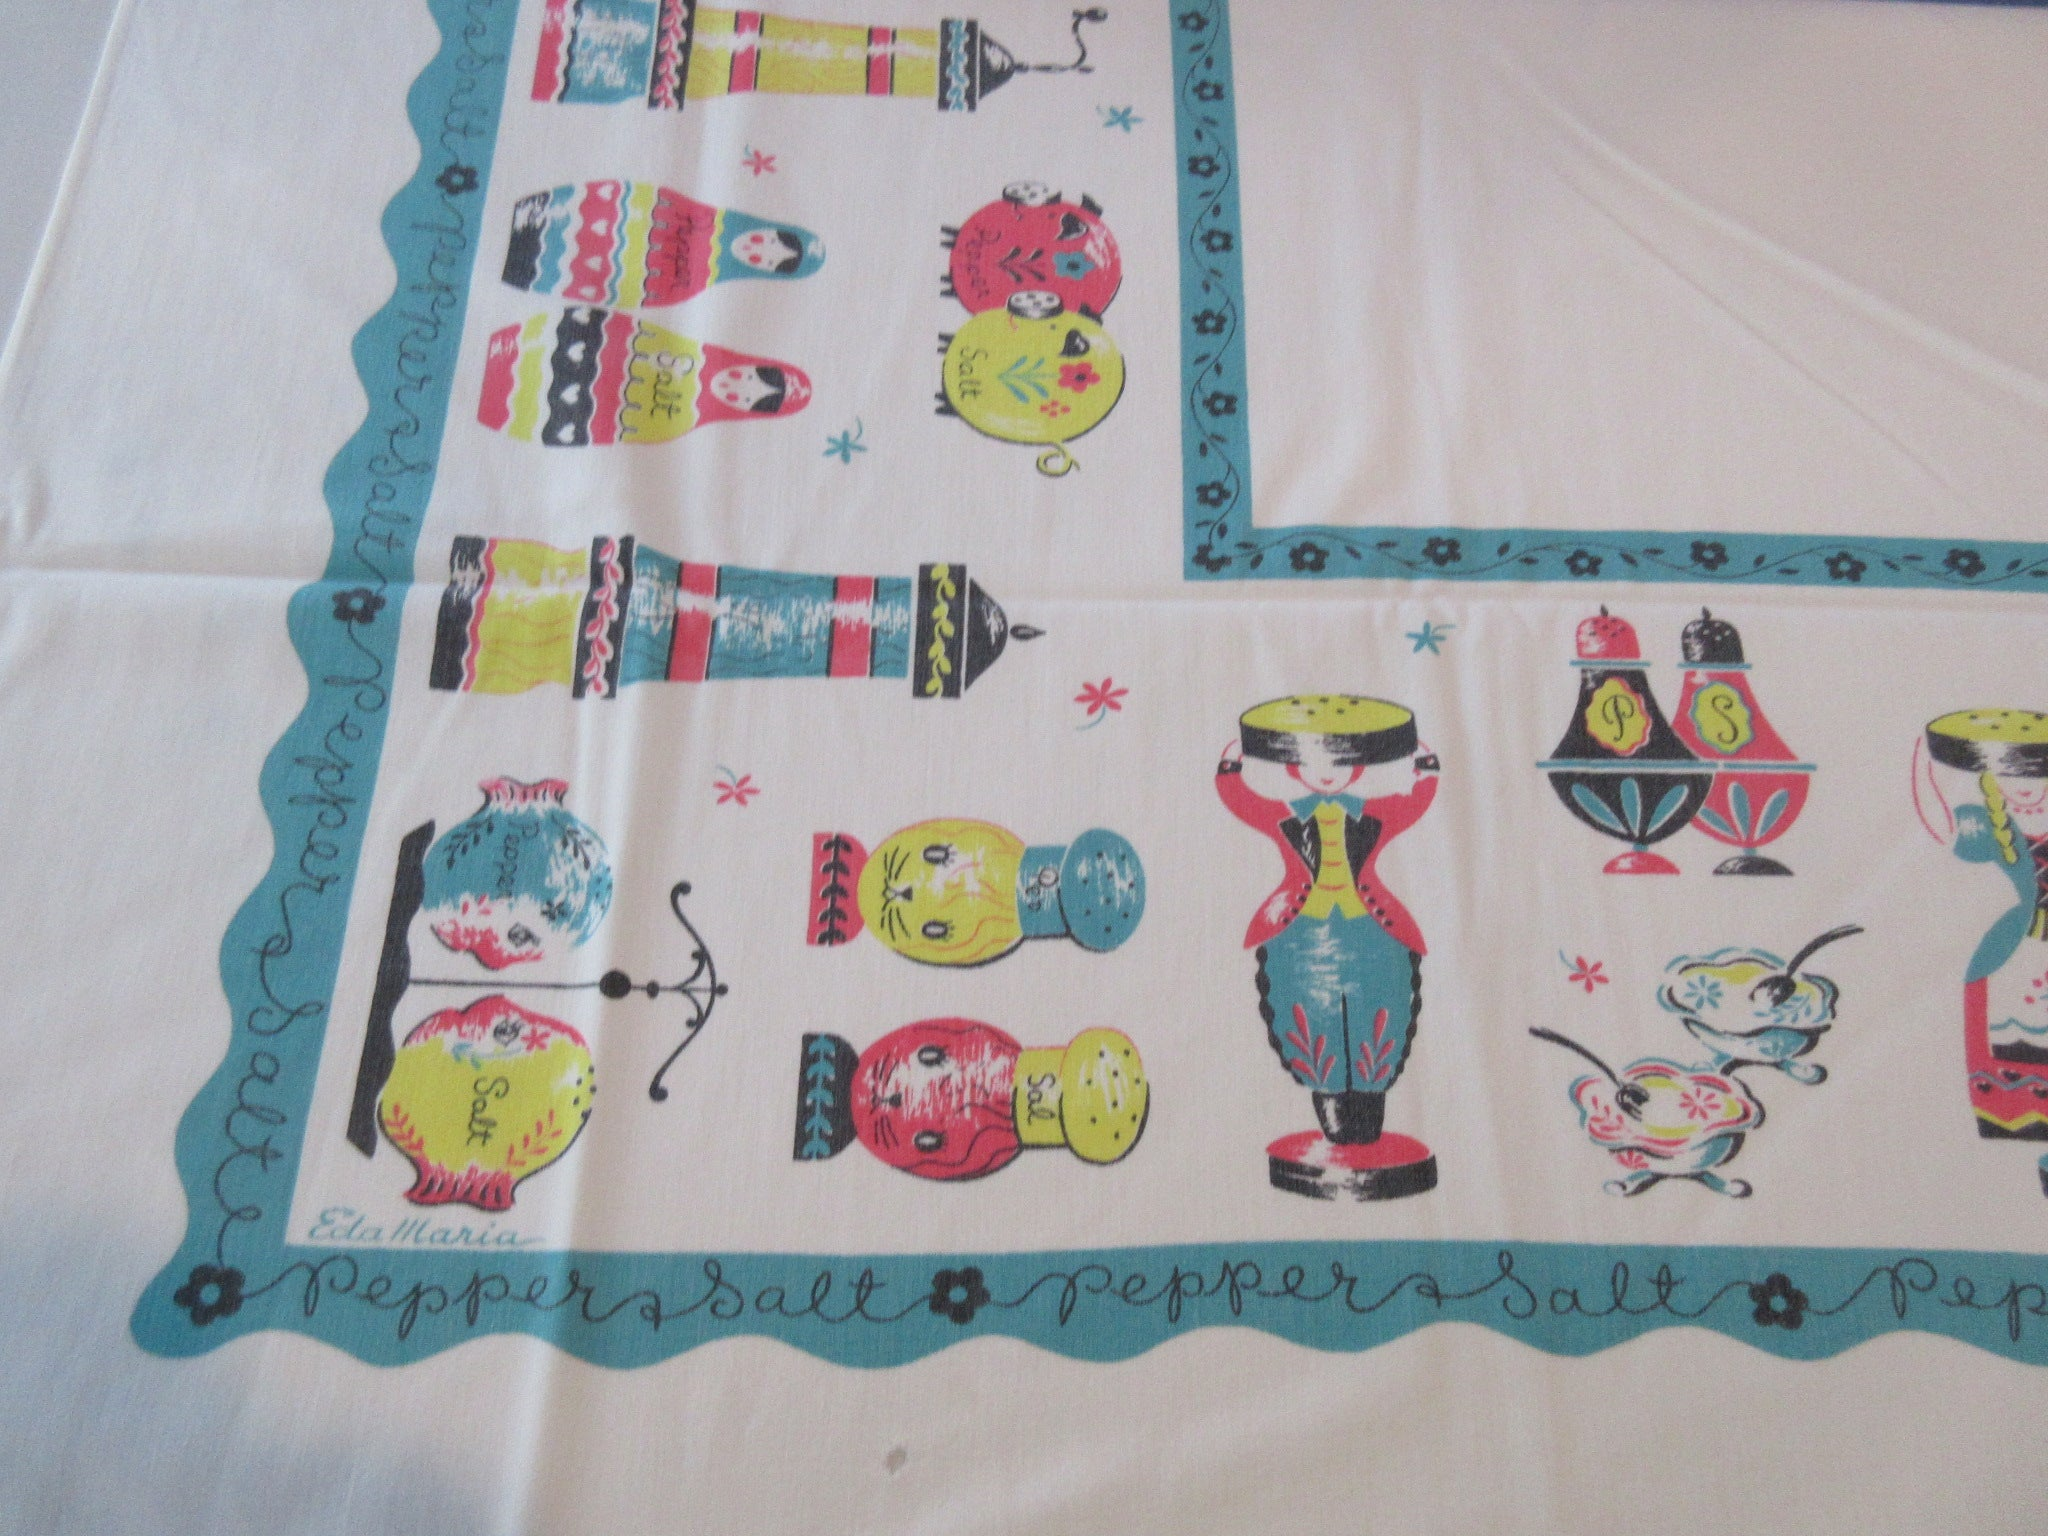 Imperfect Salt and Pepper Novelty Vintage Printed Tablecloth (53 X 42)